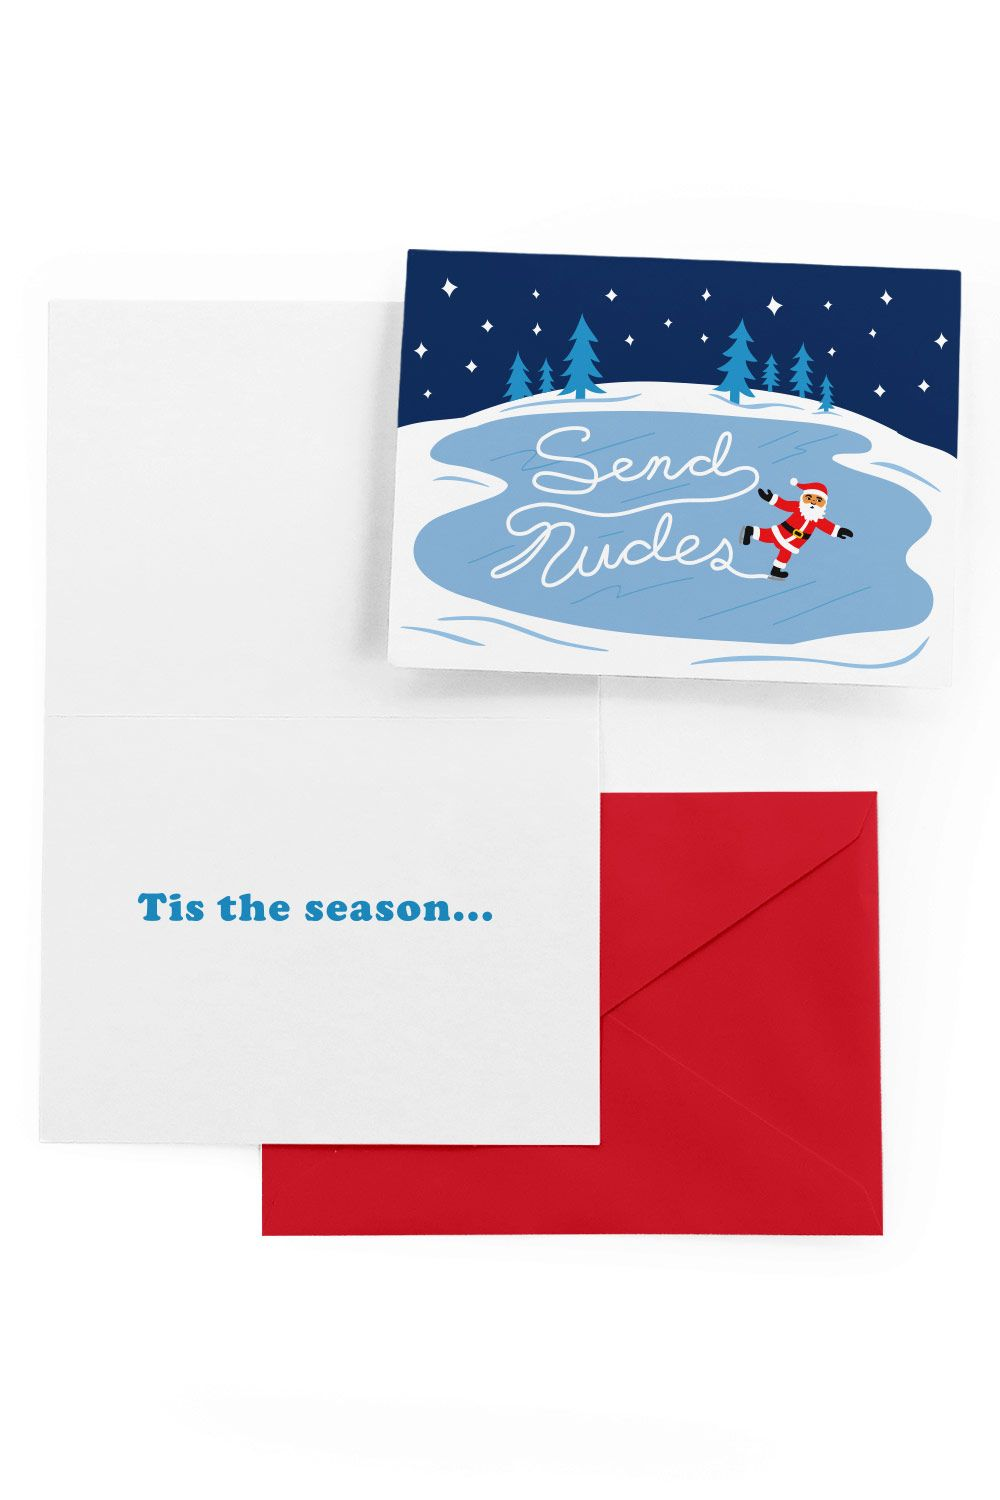 Send Nudes Christmas Card